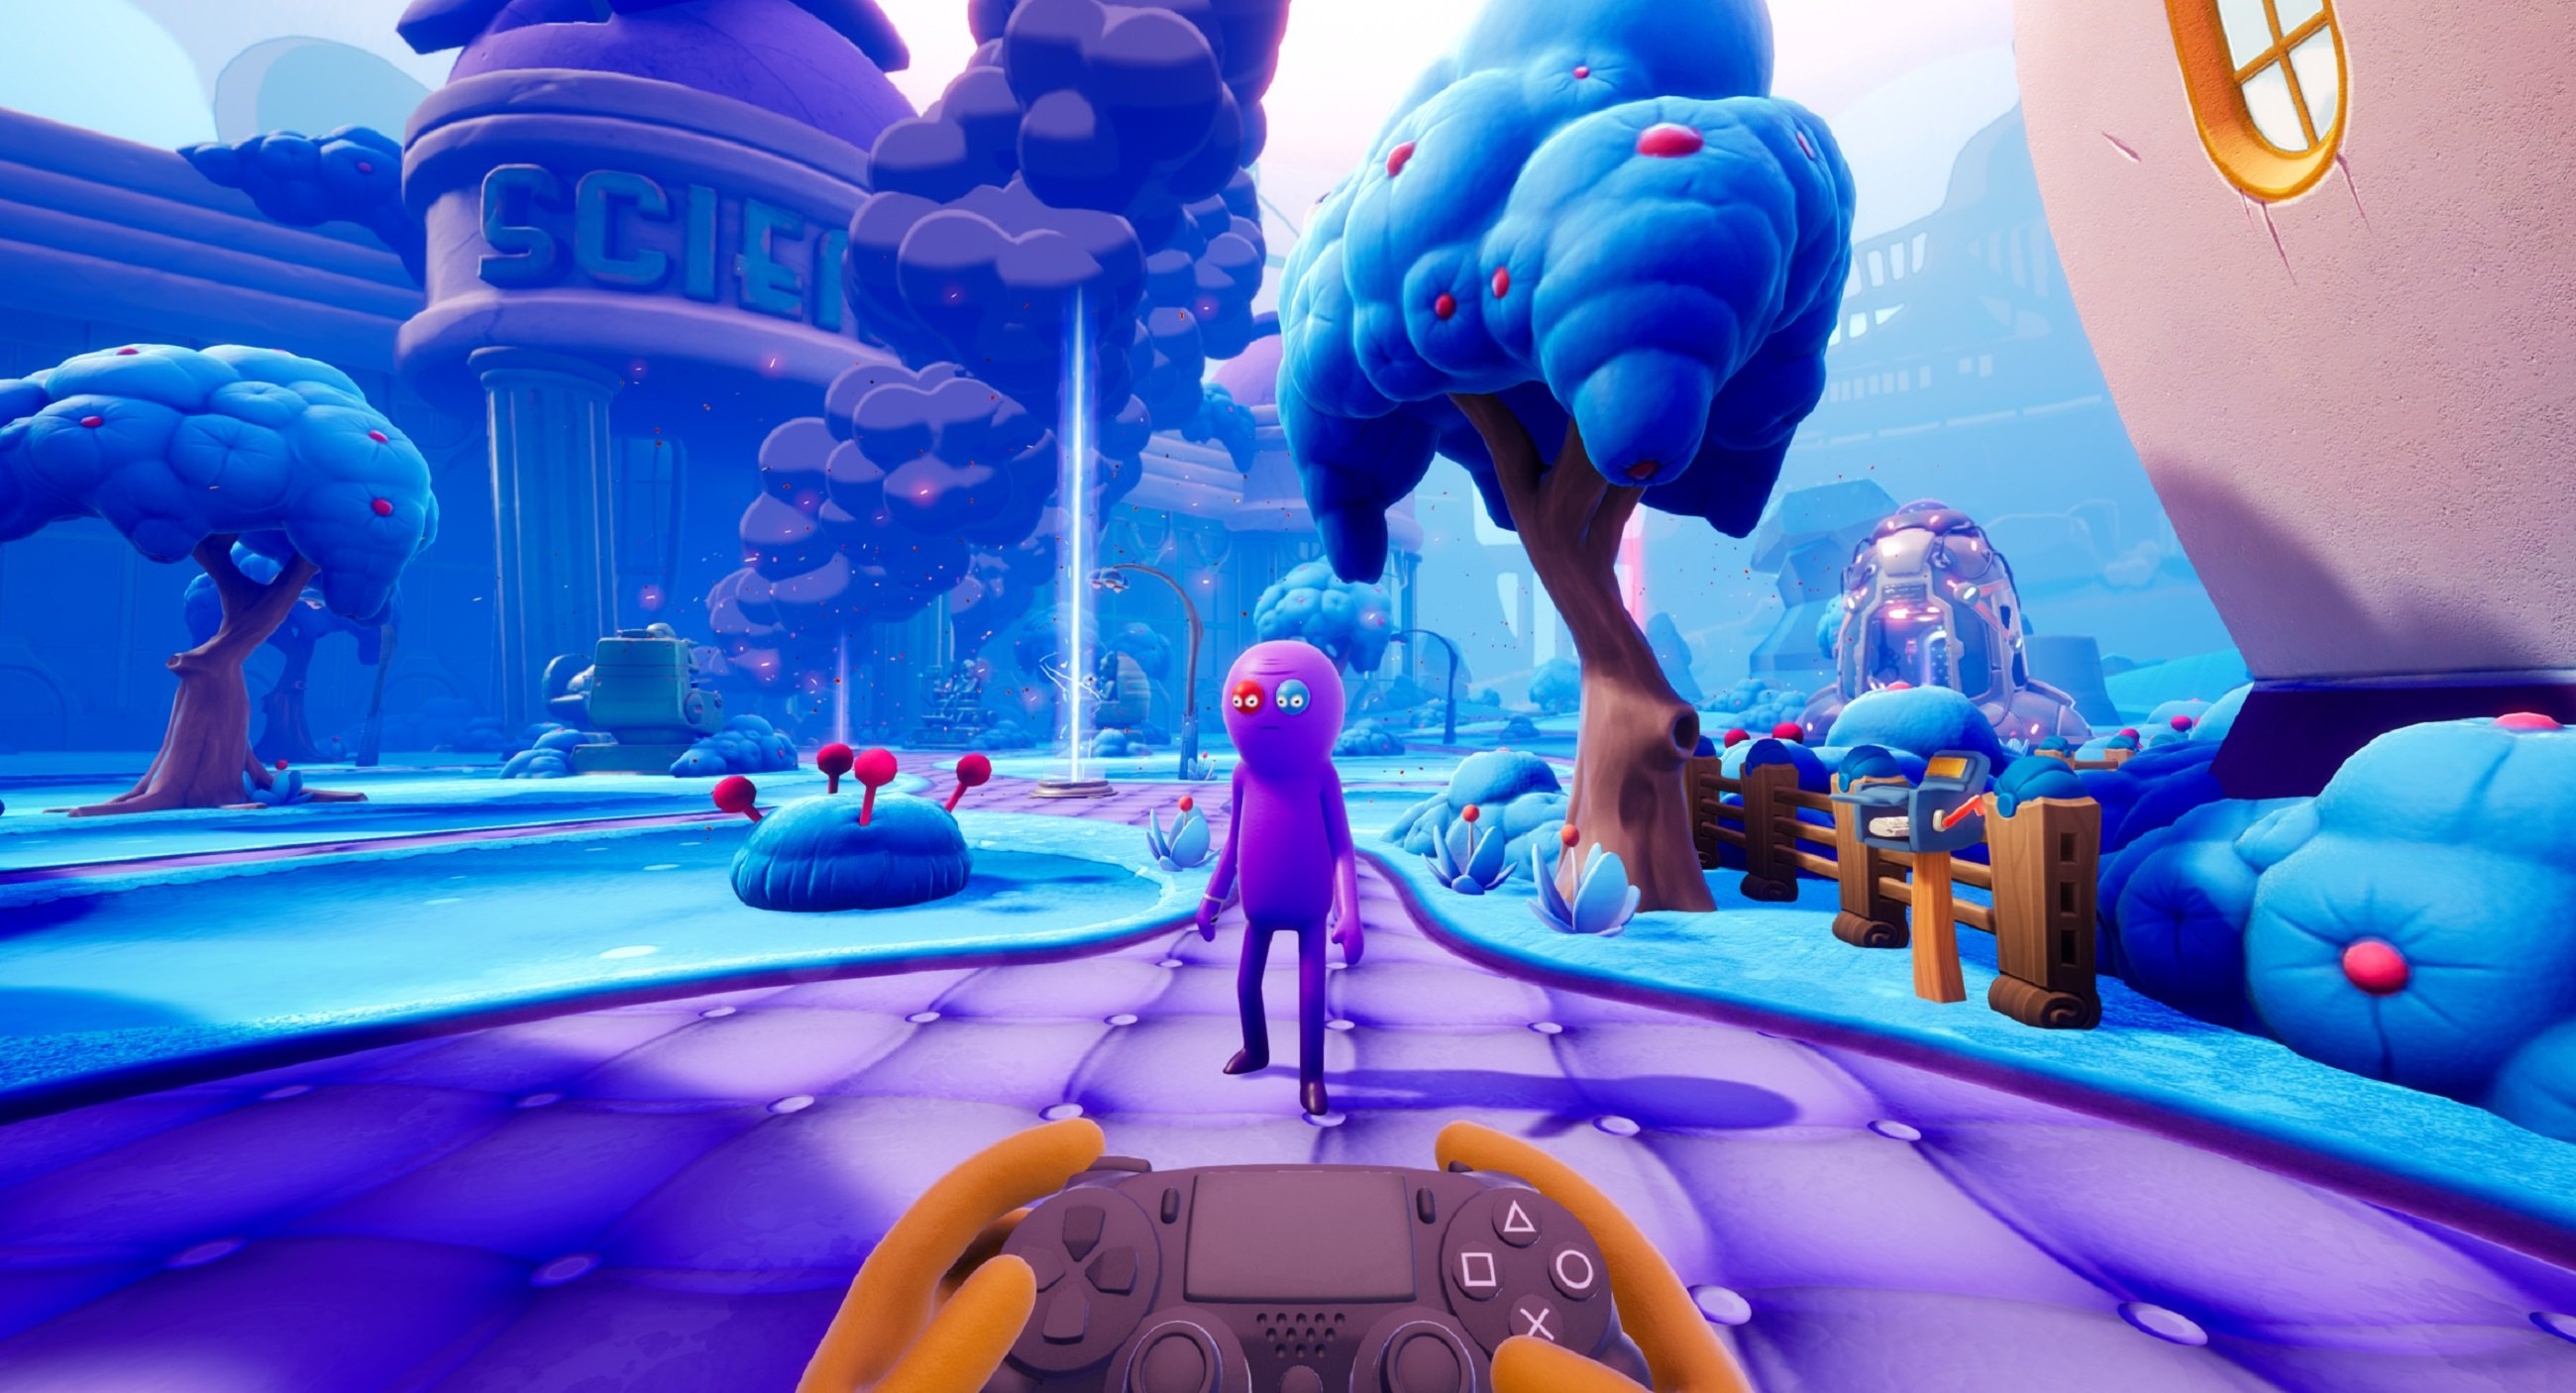 Trover Saves the Universe will release on PS4 and PSVR on May 31, and PC on Steam and the Epic Store on June 4.